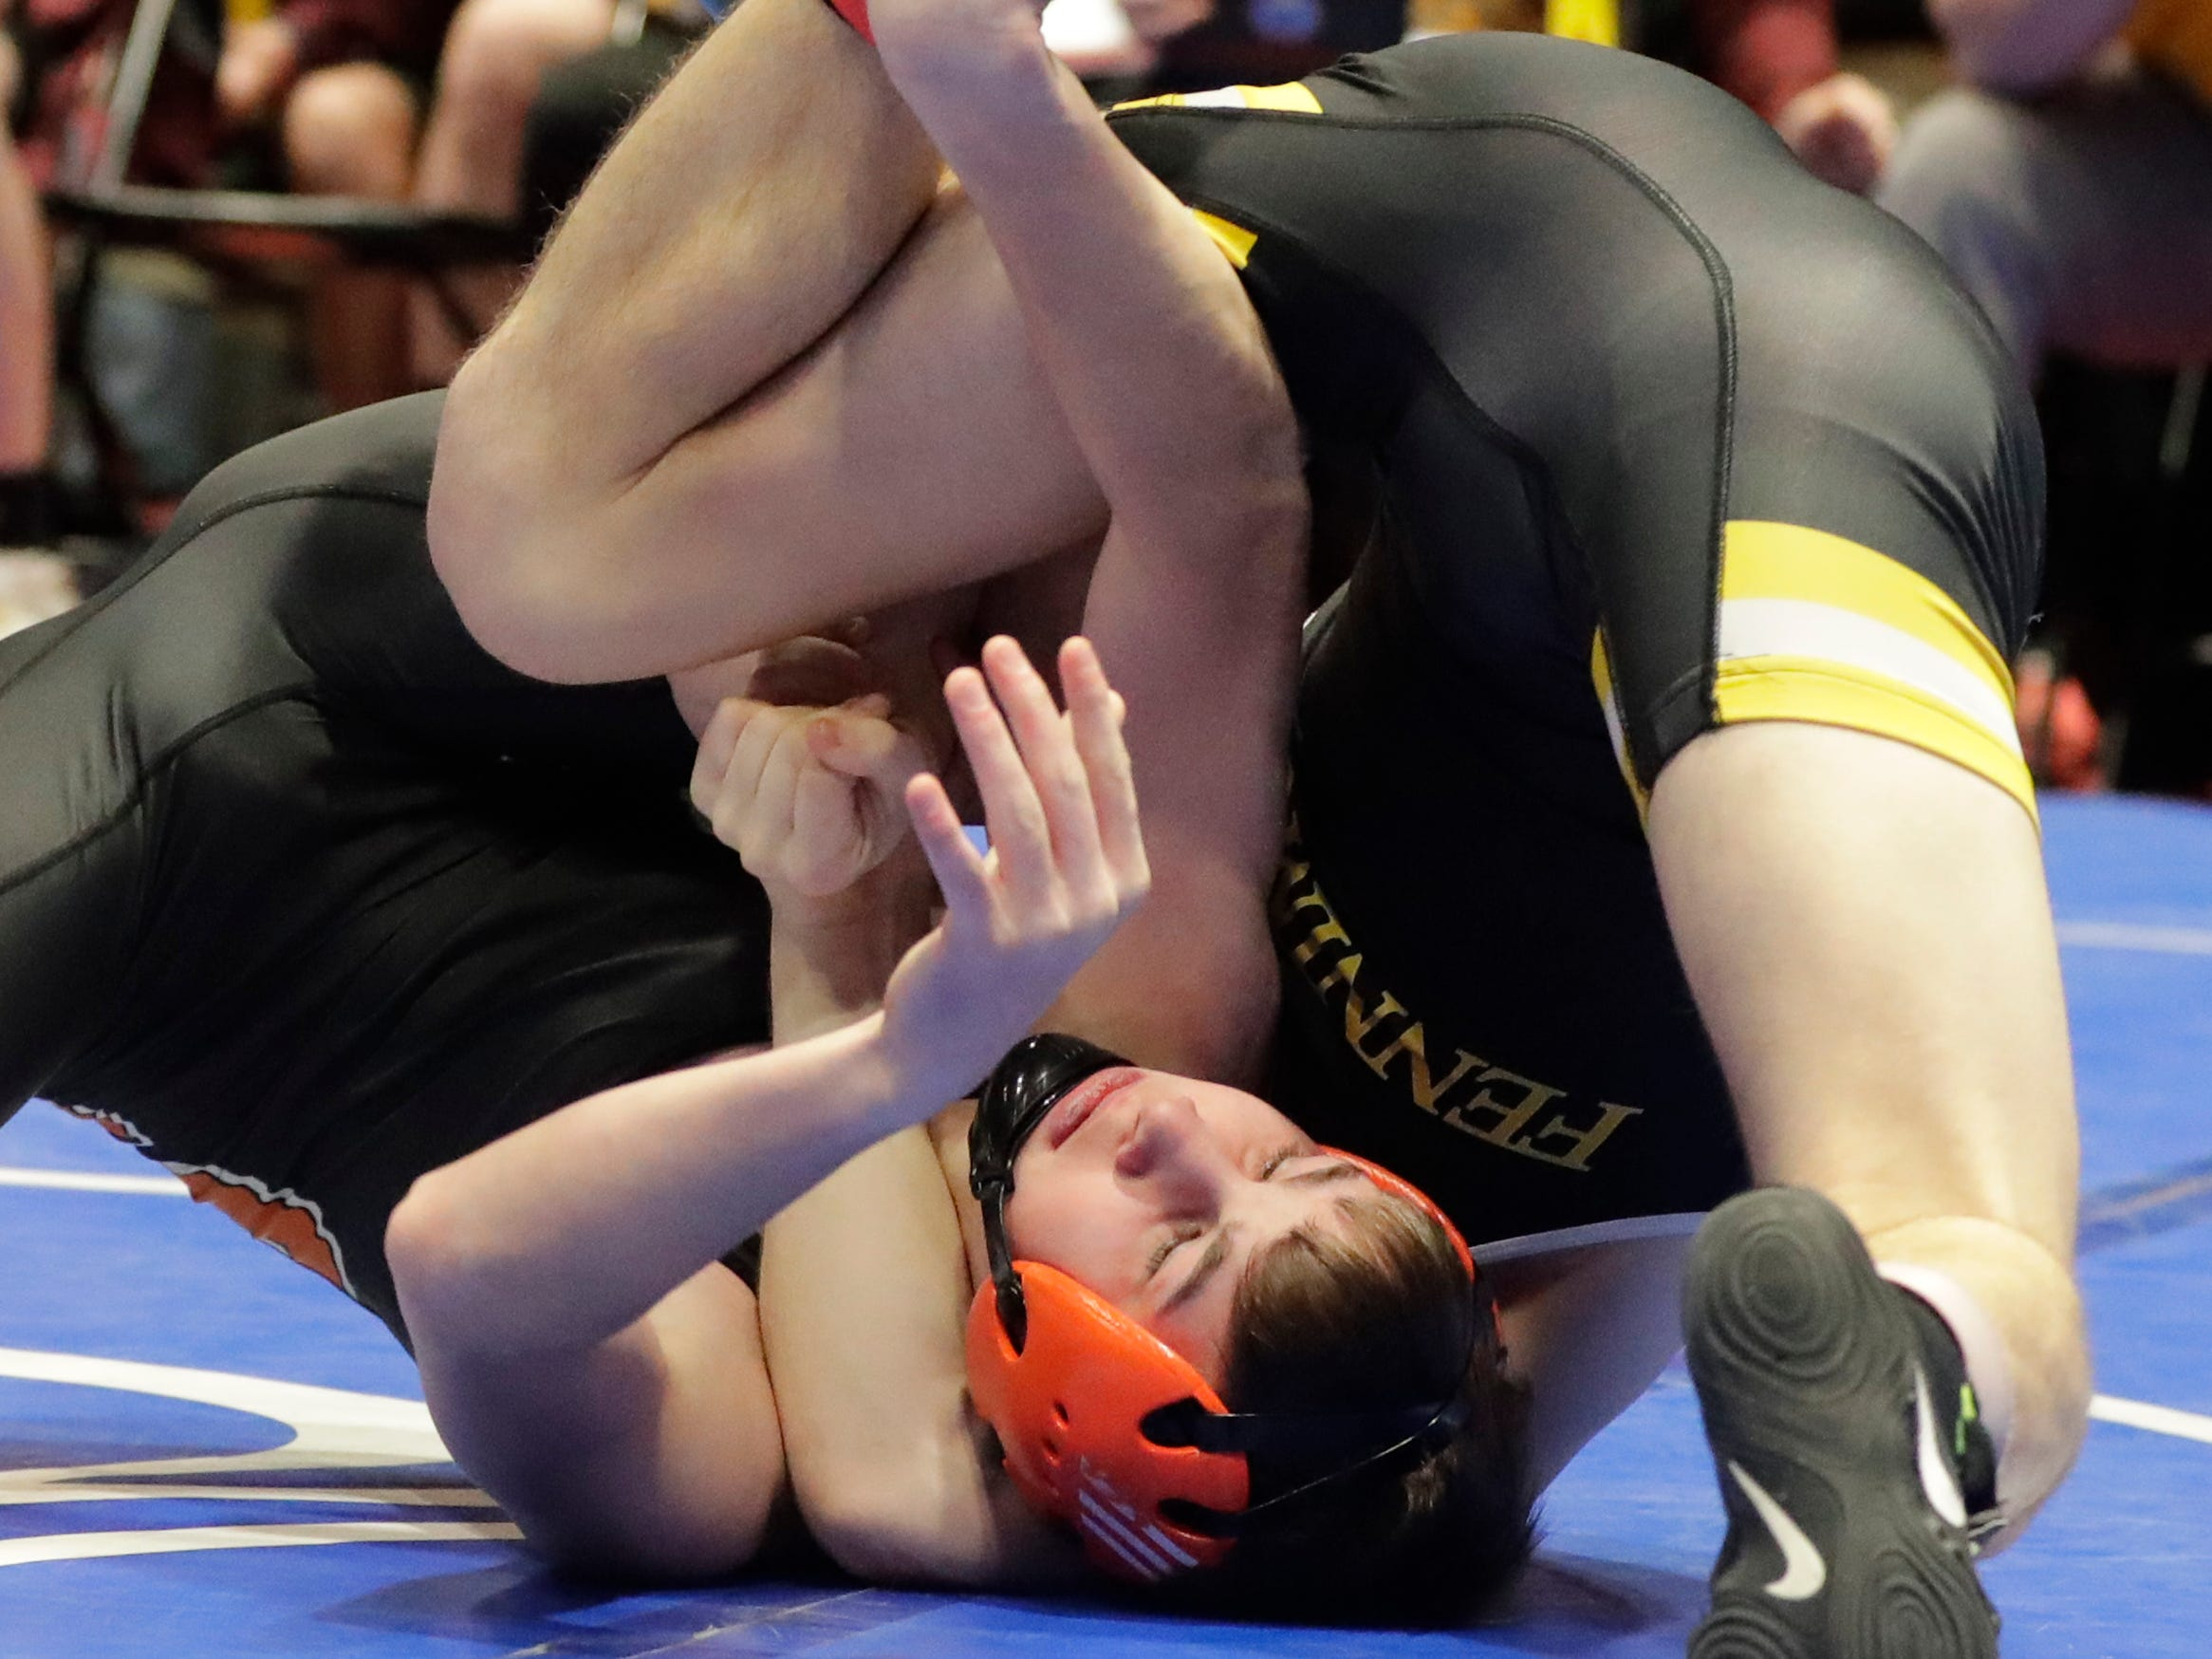 Stratford's Dillon Kirsch, bottom, is all tied up by Fennimore's Alex Birchman in the 126-pound class, Saturday, March 2, 2019, in Madison, Wis.